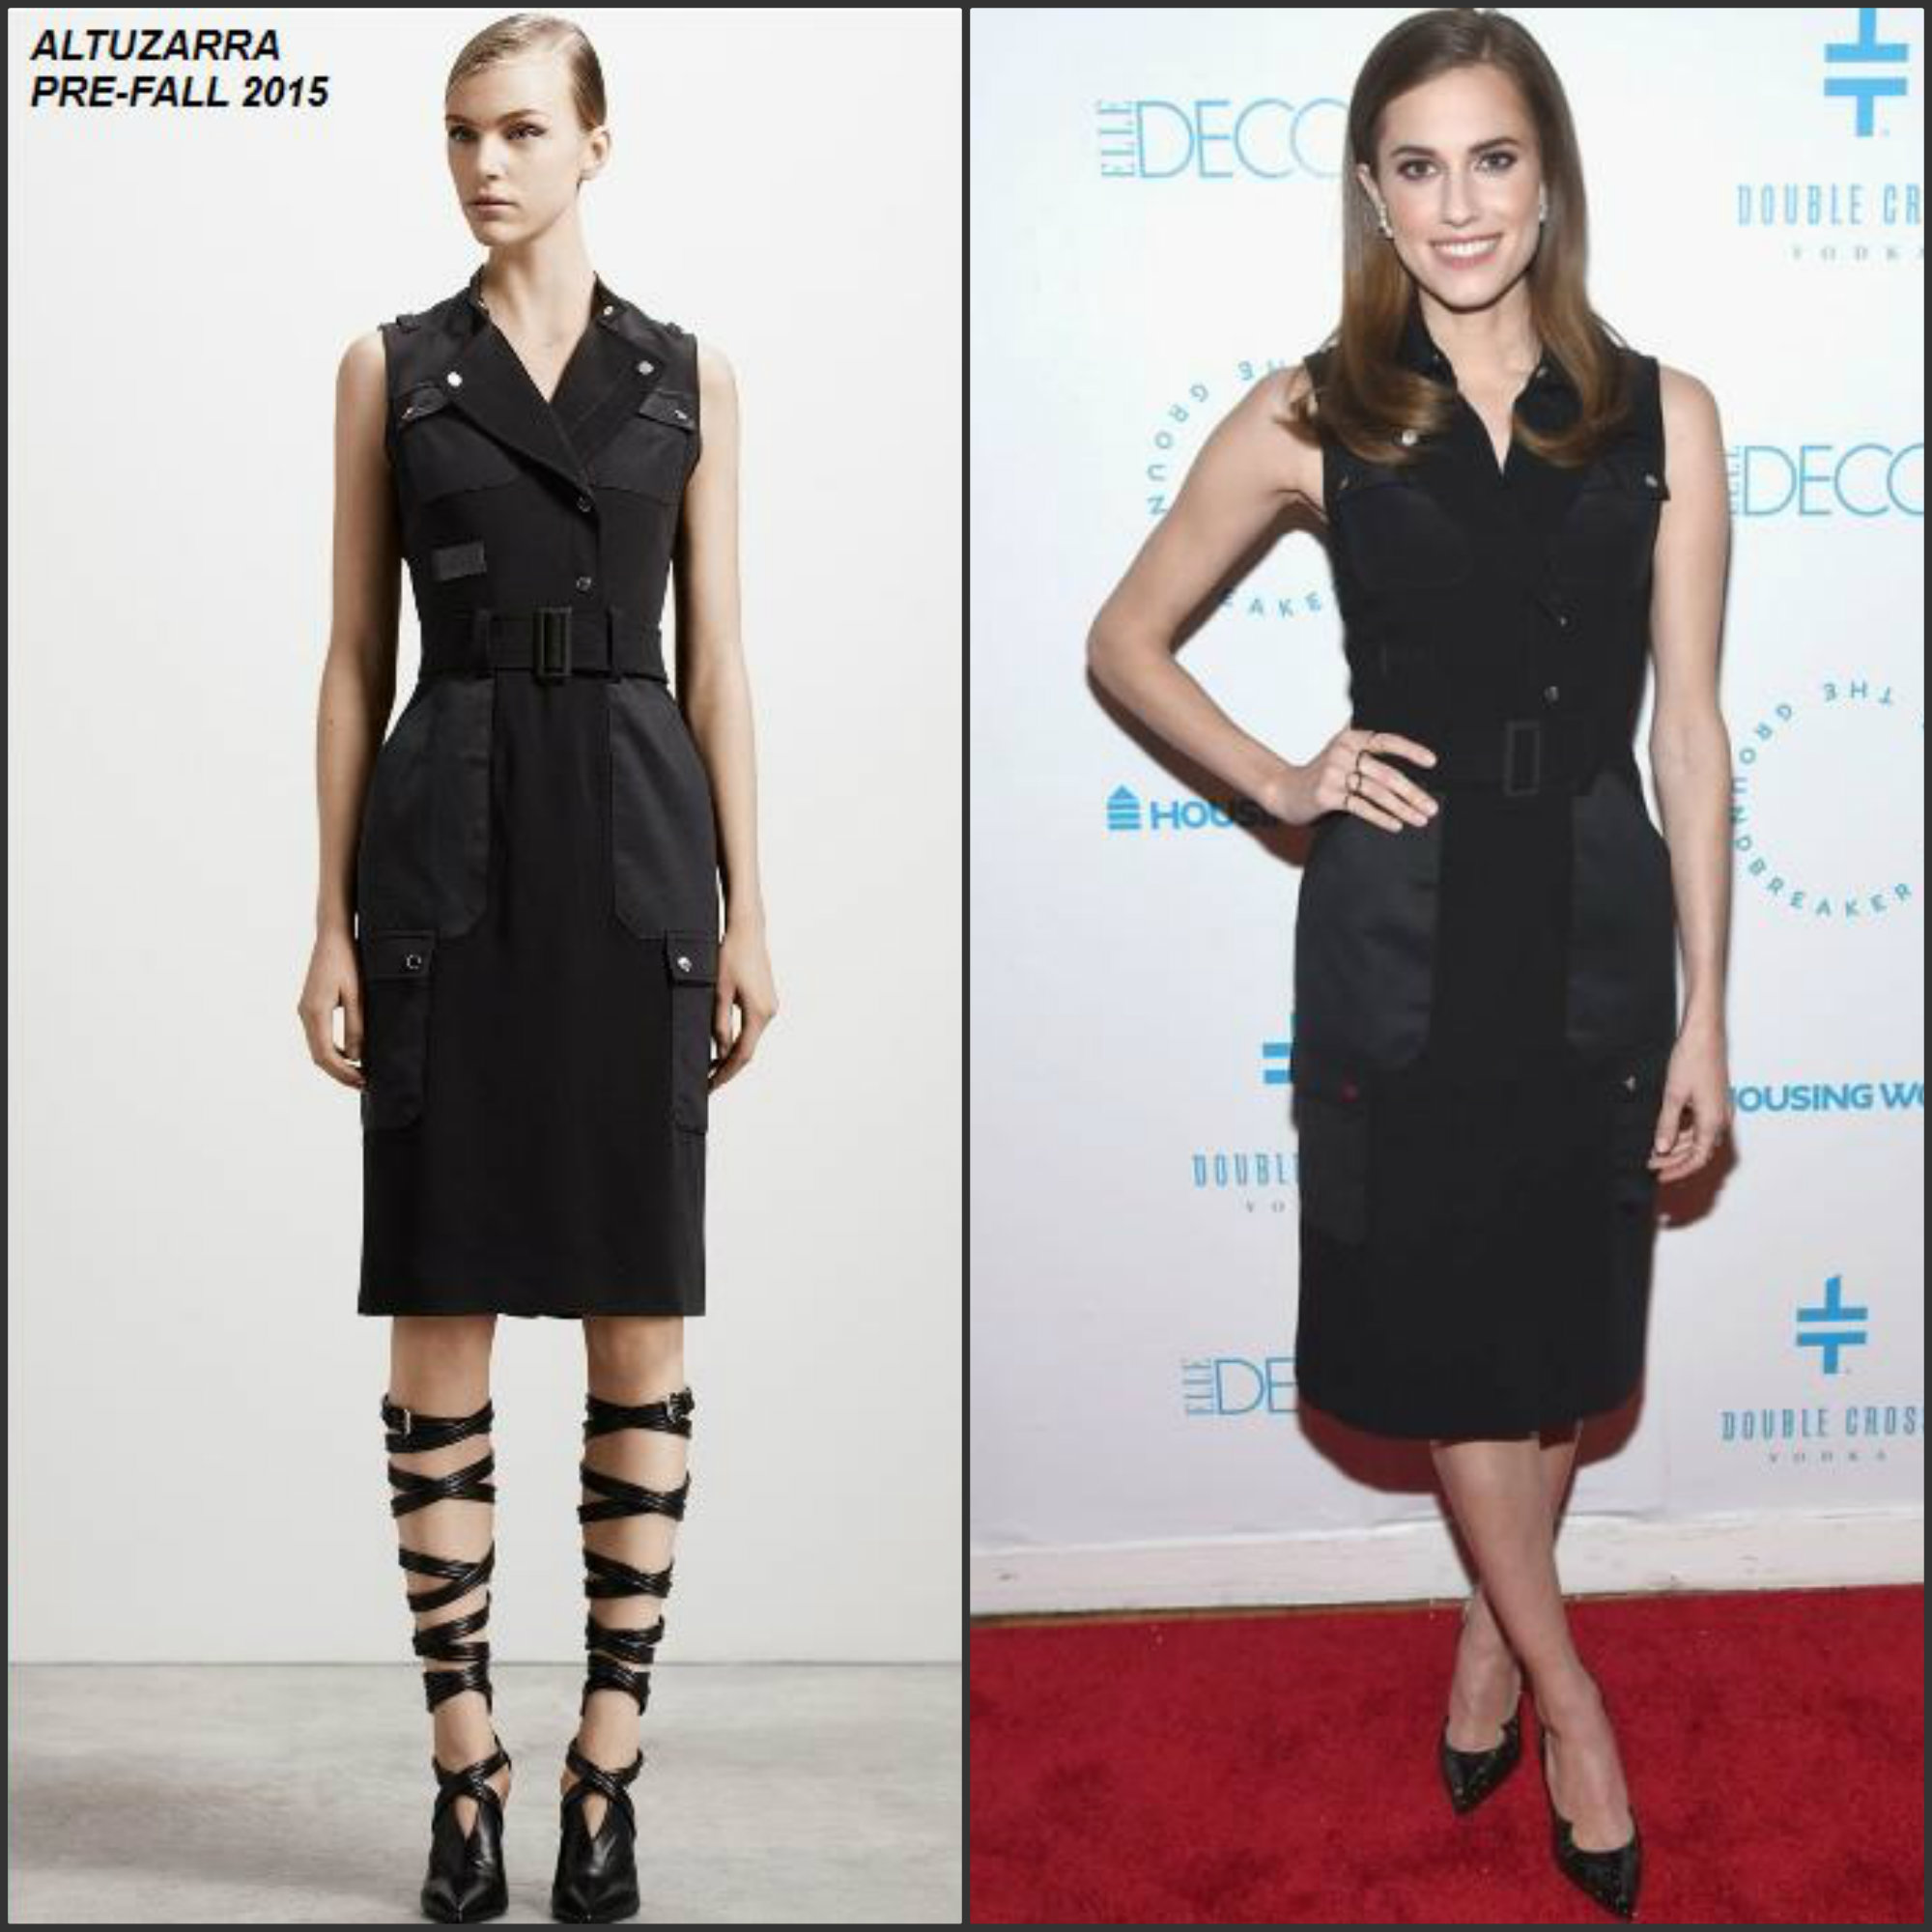 Allison-Williams-in-Altuzarra-at-the-2015-Housing-Works-Groundbreaker-Awards